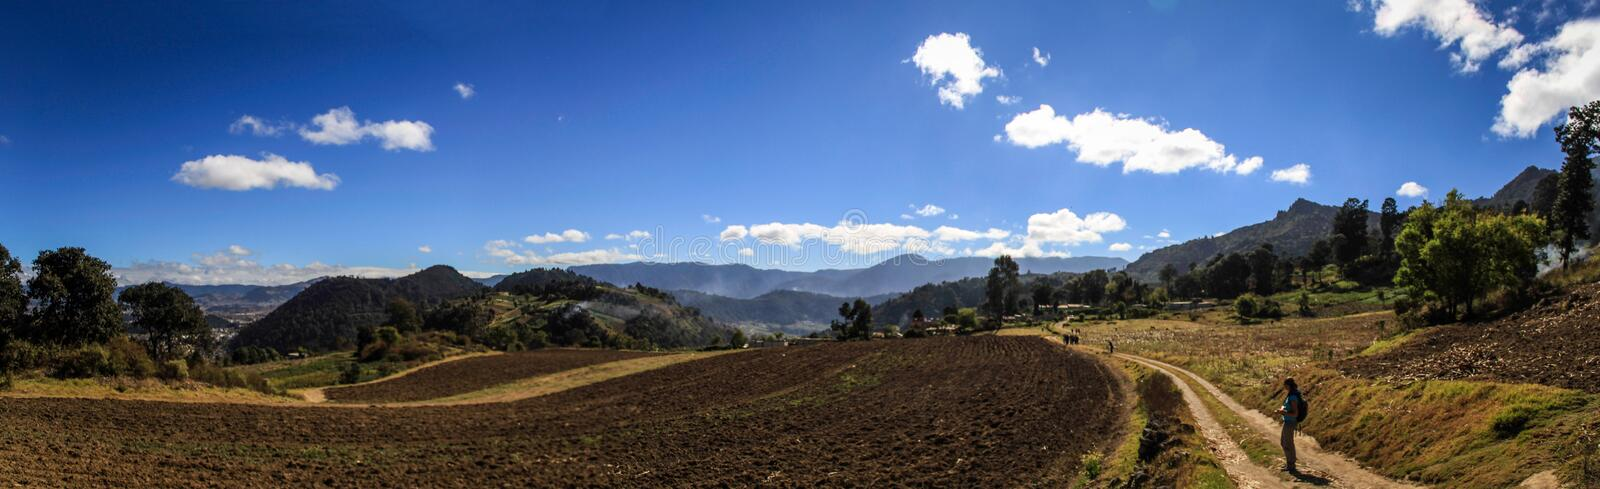 On the way to the cerro Quemado, Panoramic view on the surrounding fields and mountains, Quetzaltenango, Guatemala. The Almolonga volcano, usually called `Cerro royalty free stock image